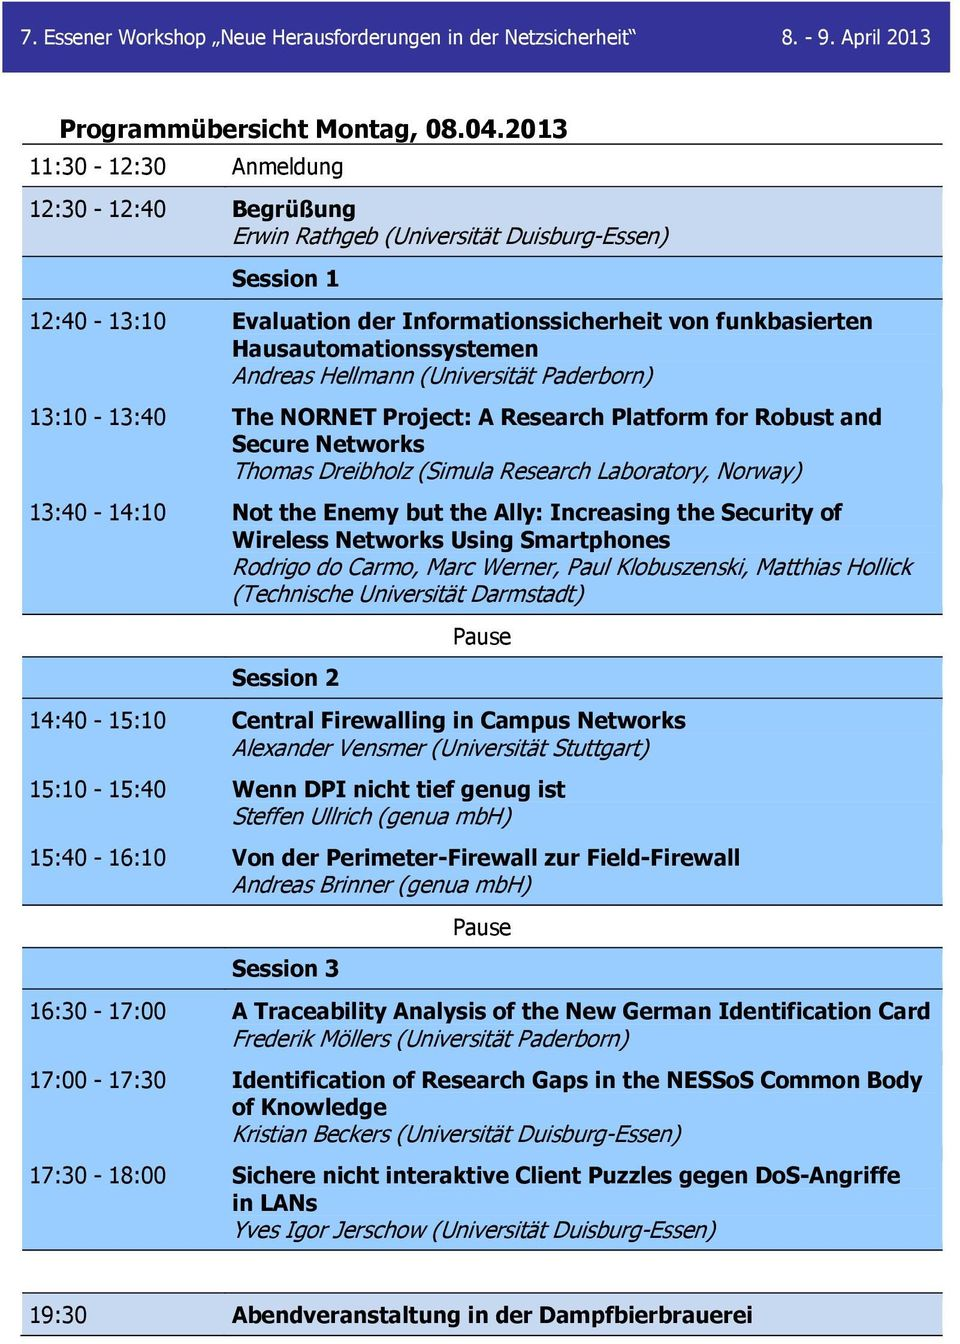 Andreas Hellmann (Universität Paderborn) 13:10-13:40 The NORNET Project: A Research Platform for Robust and Secure Networks Thomas Dreibholz (Simula Research Laboratory, Norway) 13:40-14:10 Not the